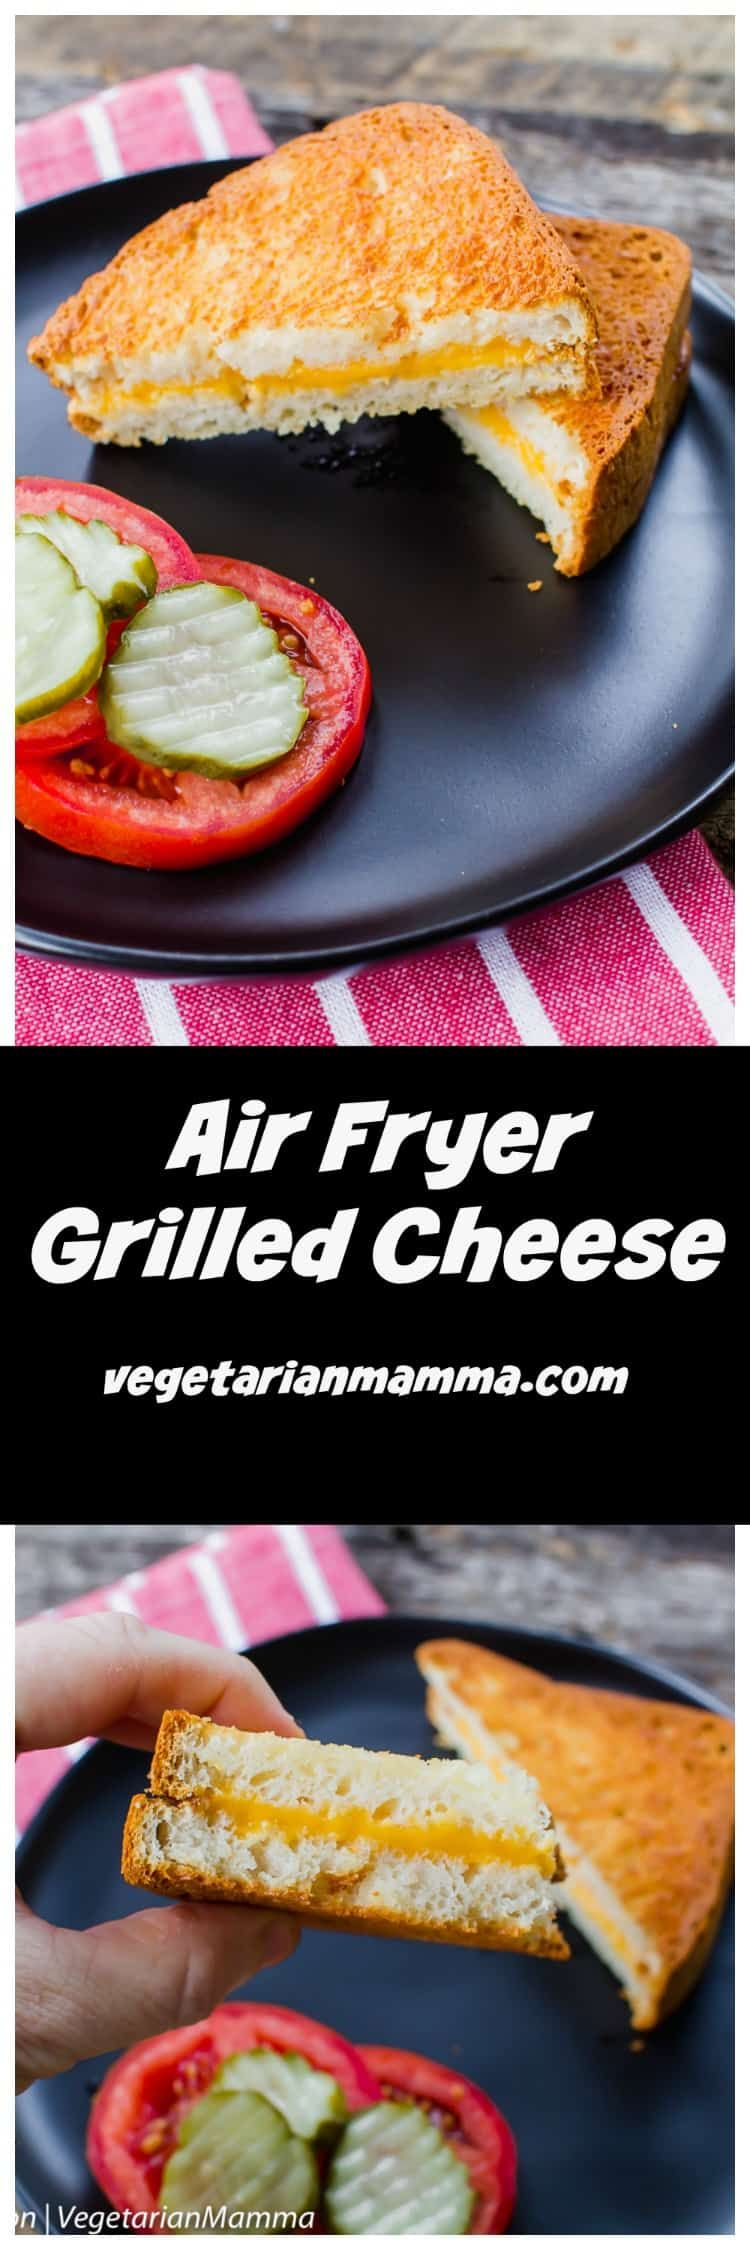 Air Fryer Grilled Cheese, gives you the perfect toasted